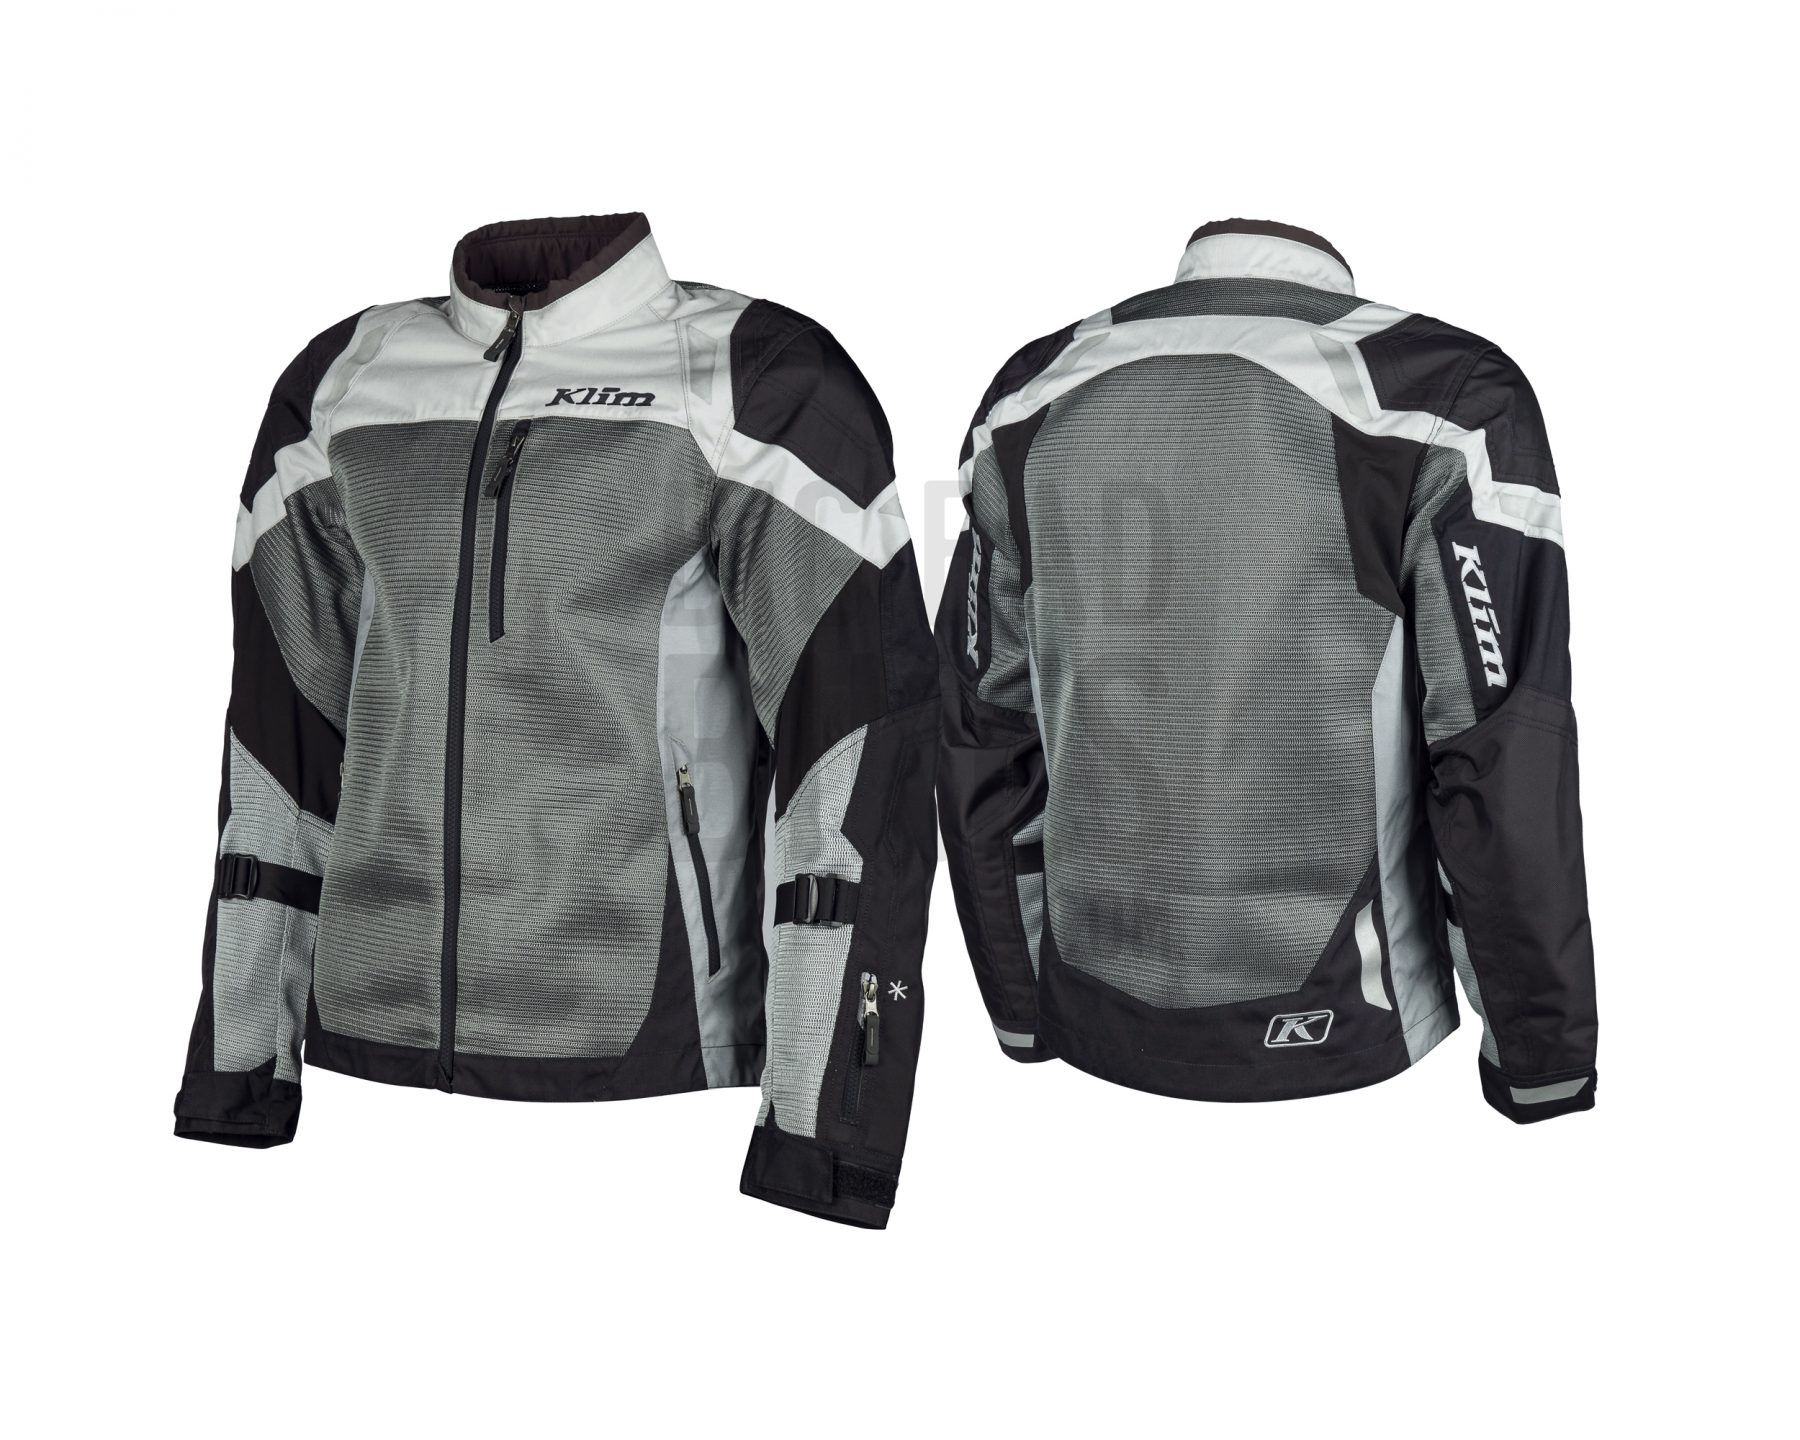 Induction Jacket_5060-002_Light Gray_Secondary_02